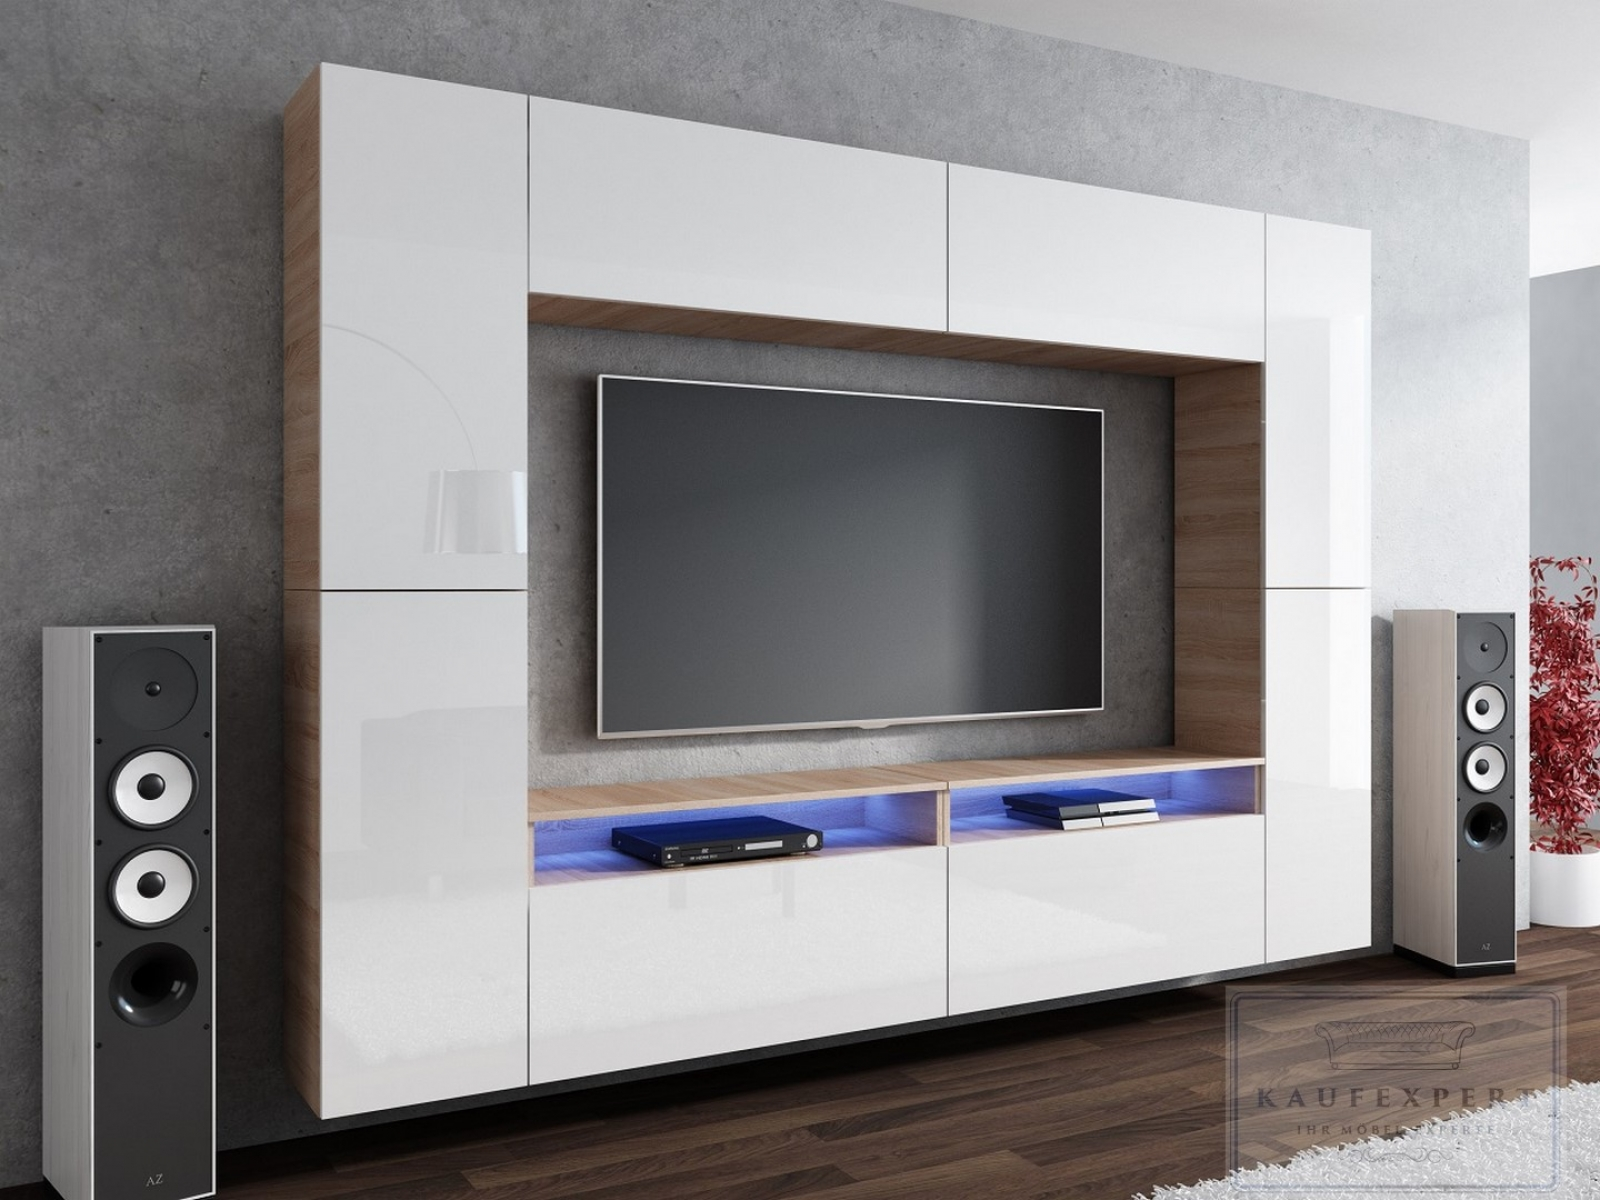 kaufexpert wohnwand cinema wei hochglanz sonoma eiche 280 cm mediawand medienwand design. Black Bedroom Furniture Sets. Home Design Ideas